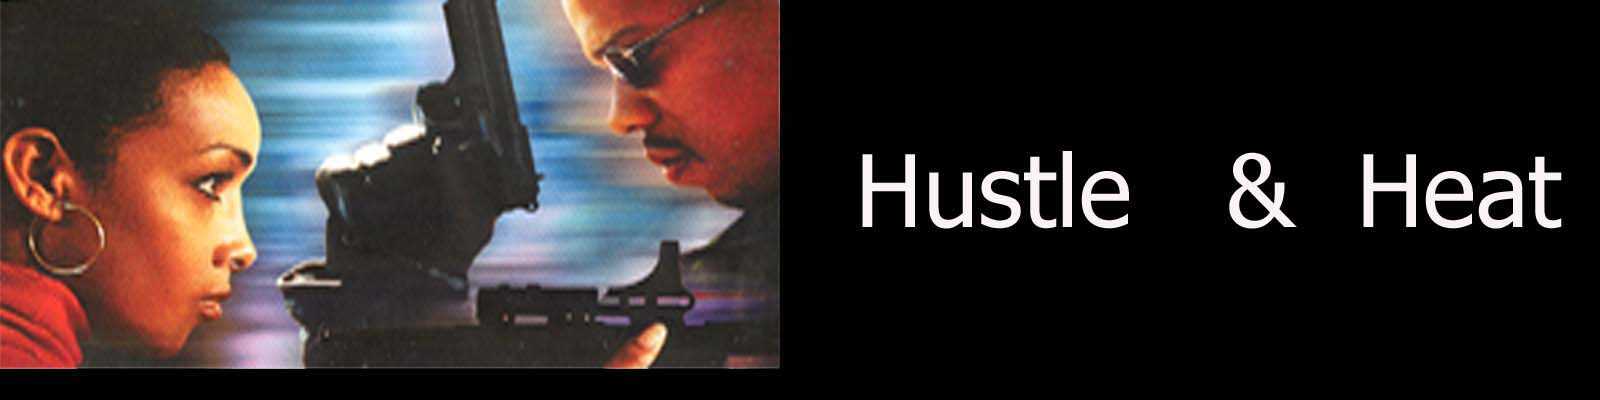 HUSTLE & HEAT:Written by Duane Martin,Directed by Craig Ross Jr.